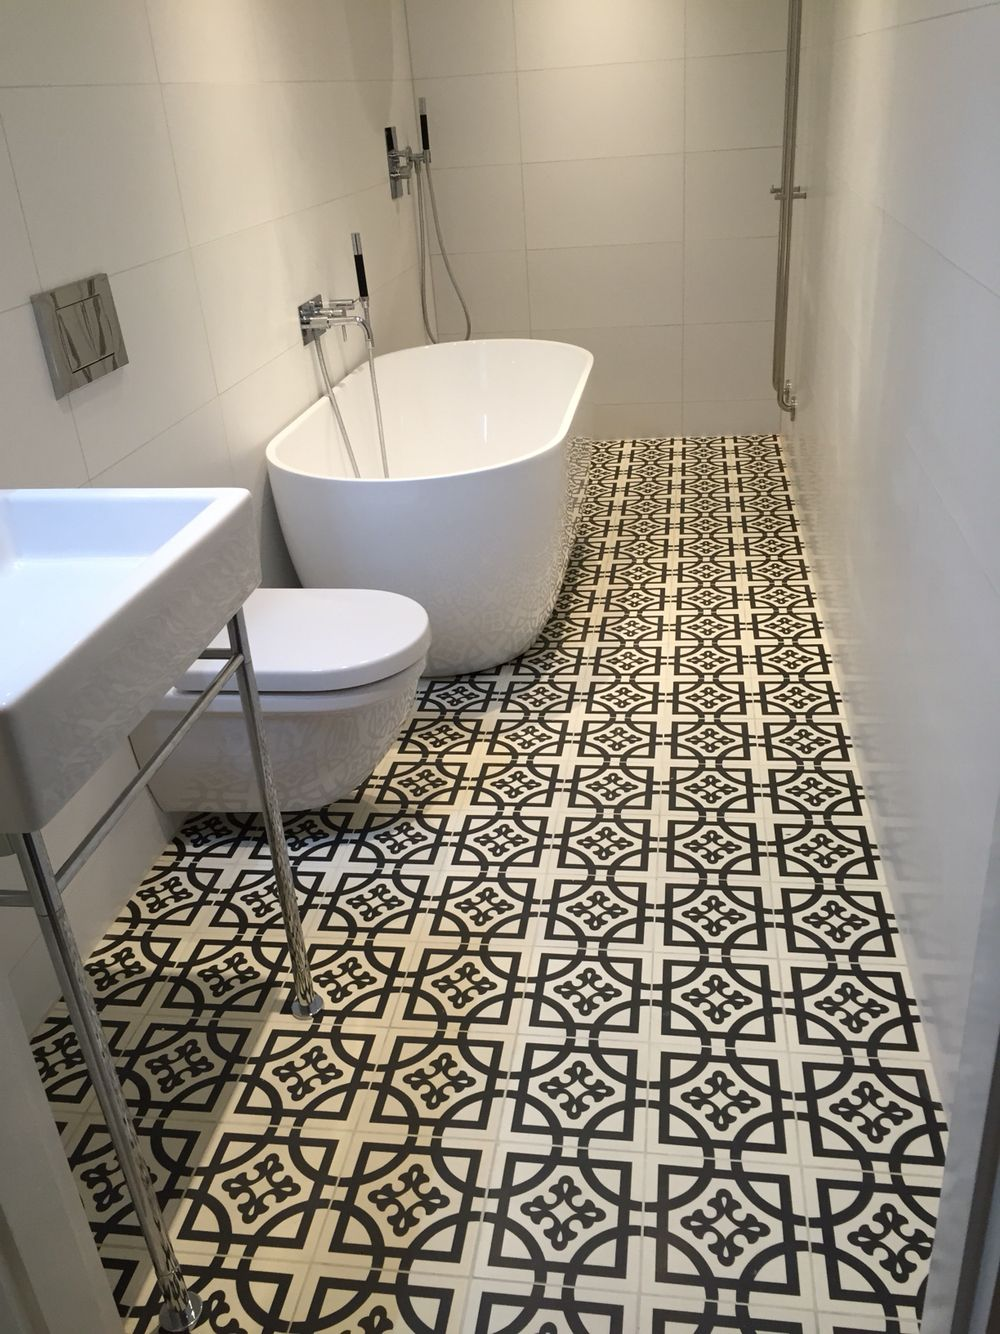 flooring ideas for small bathrooms%0A firedearth duravit Philip starck tapwell sveabad inr swoon  Bathroom InspoSmall  Bathroom IdeasSmall